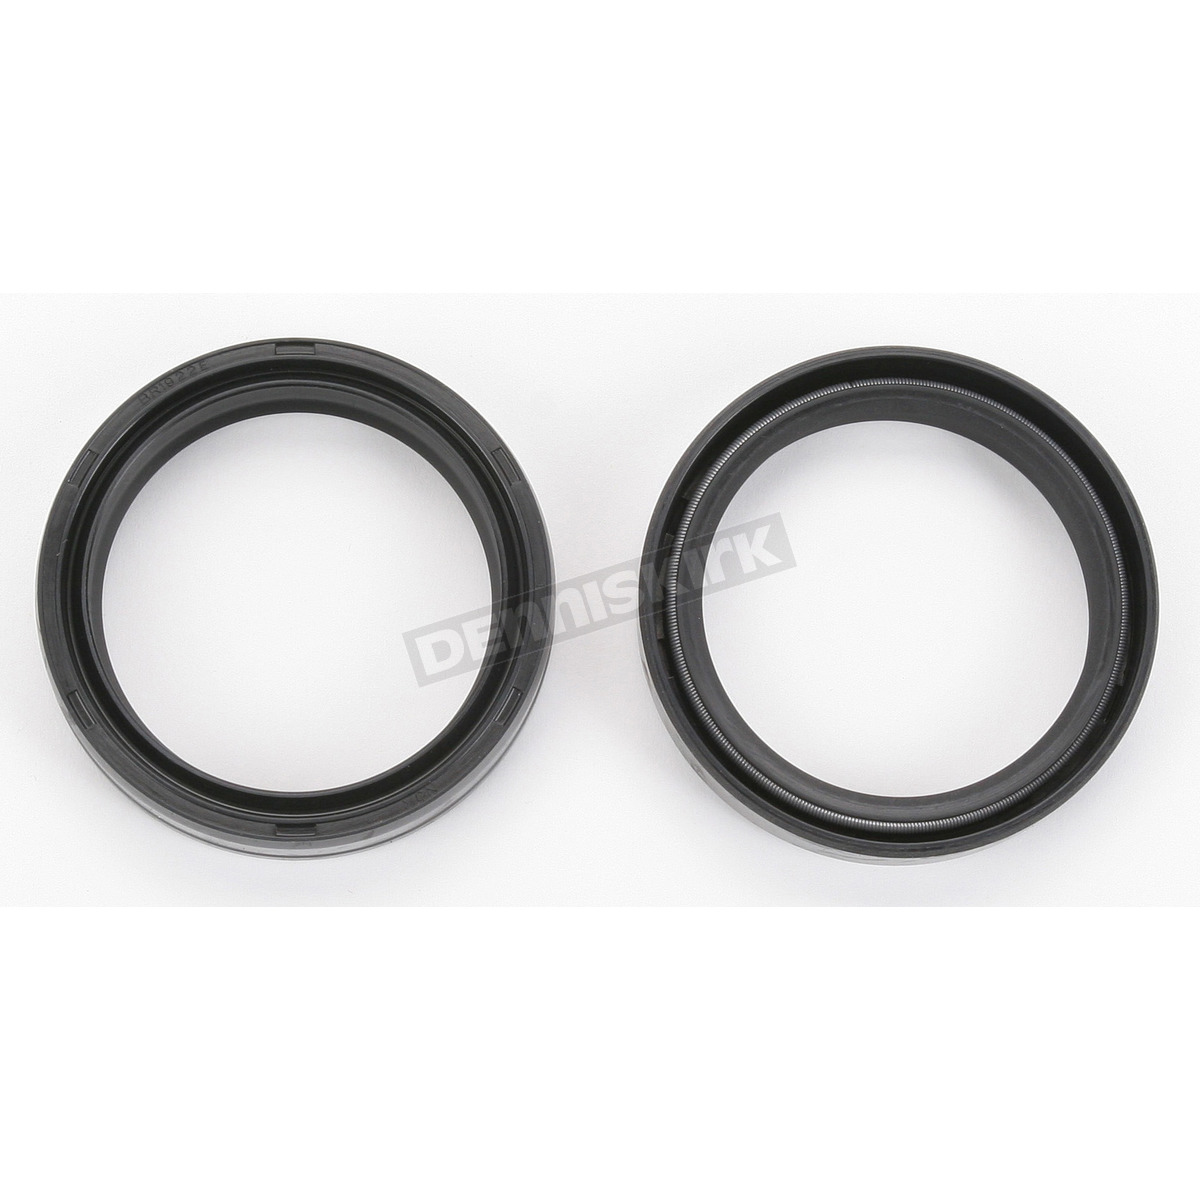 Fork Seals - 43mm x 54mm x 11mm - 0407-0030